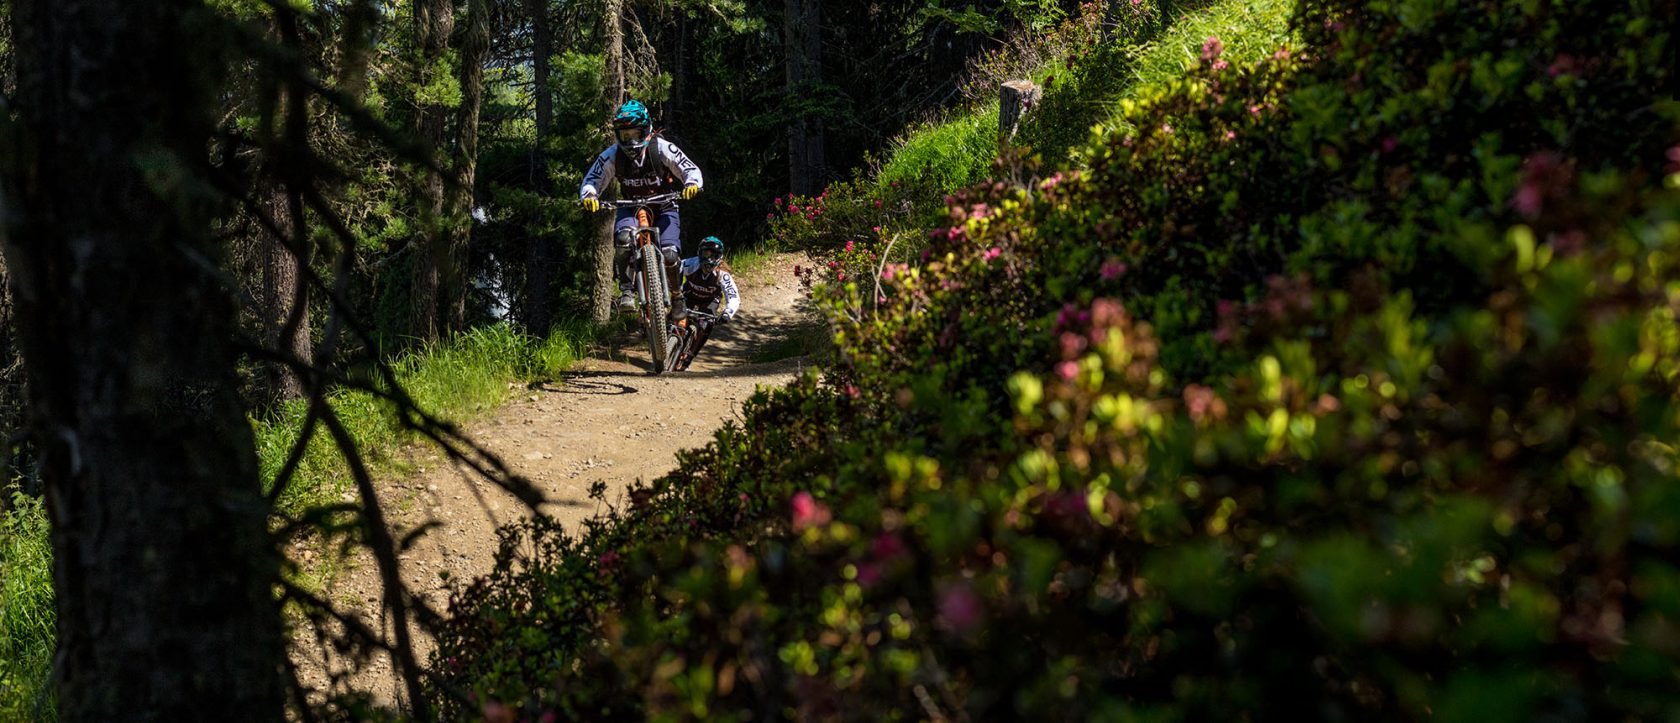 guided mountainbike trips with AREA 47